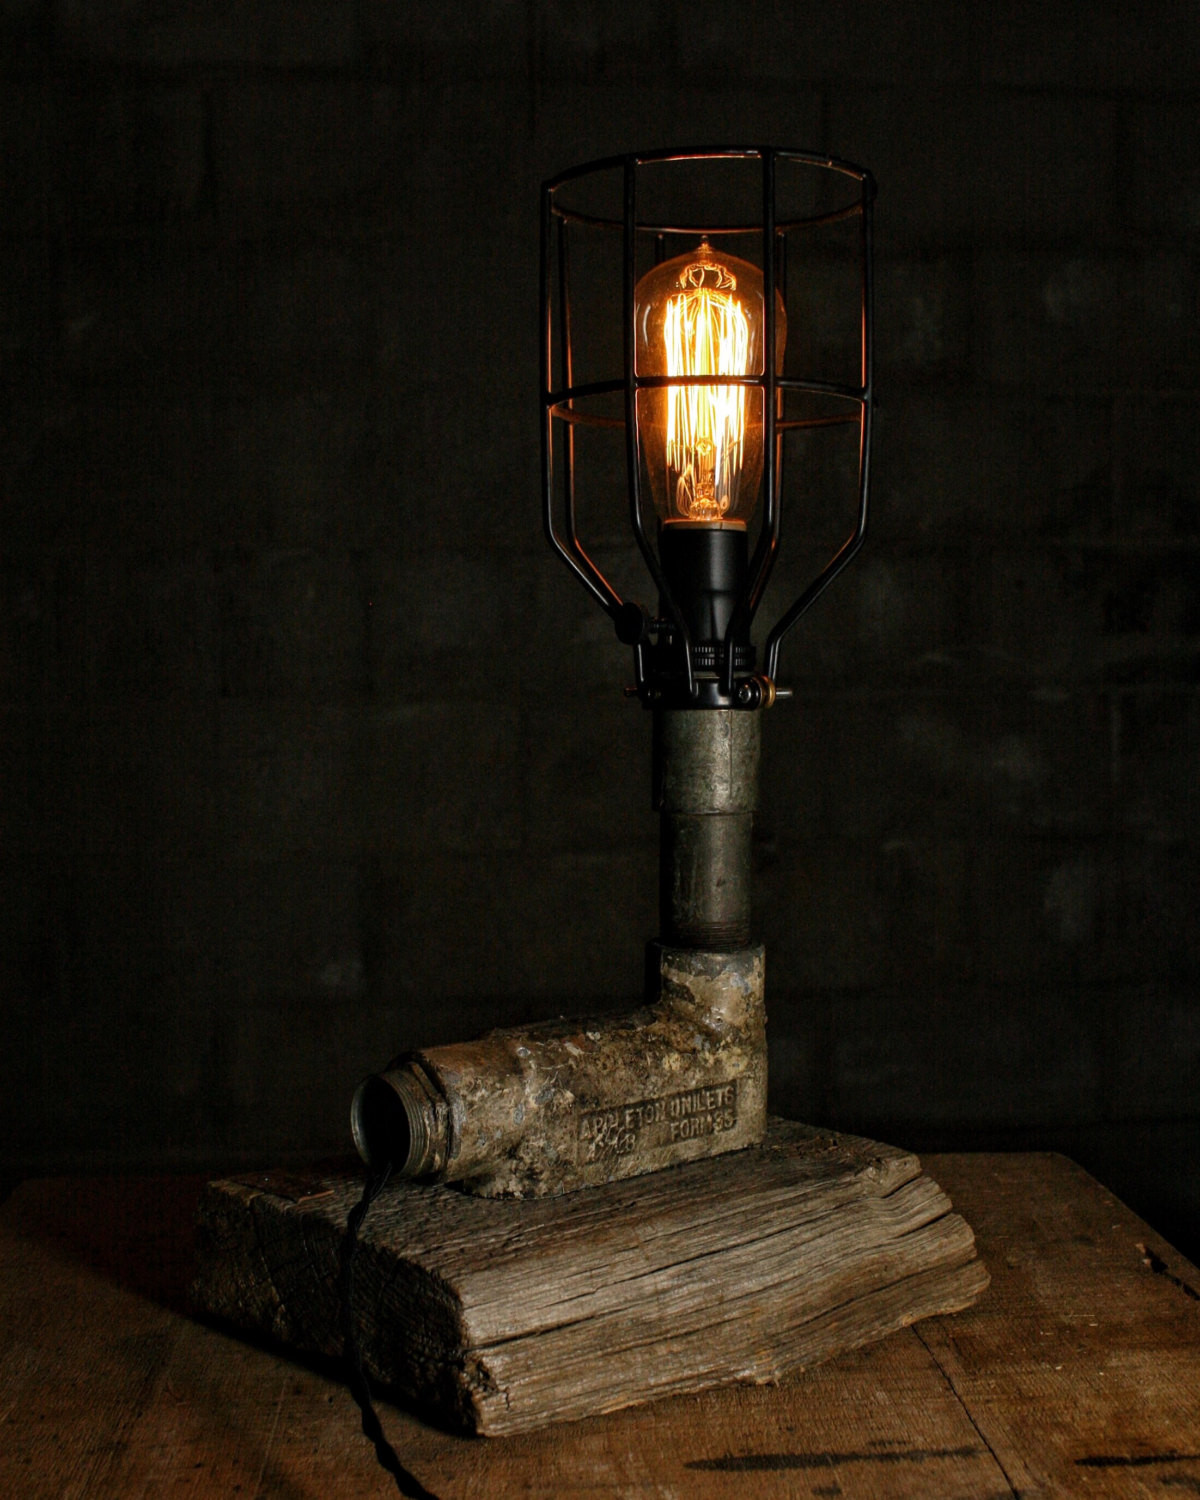 Best ideas about Rustic Desk Lamp . Save or Pin Rustic Pipe Lamp Desk Lamp Table Lamp Industrial Lamp Now.